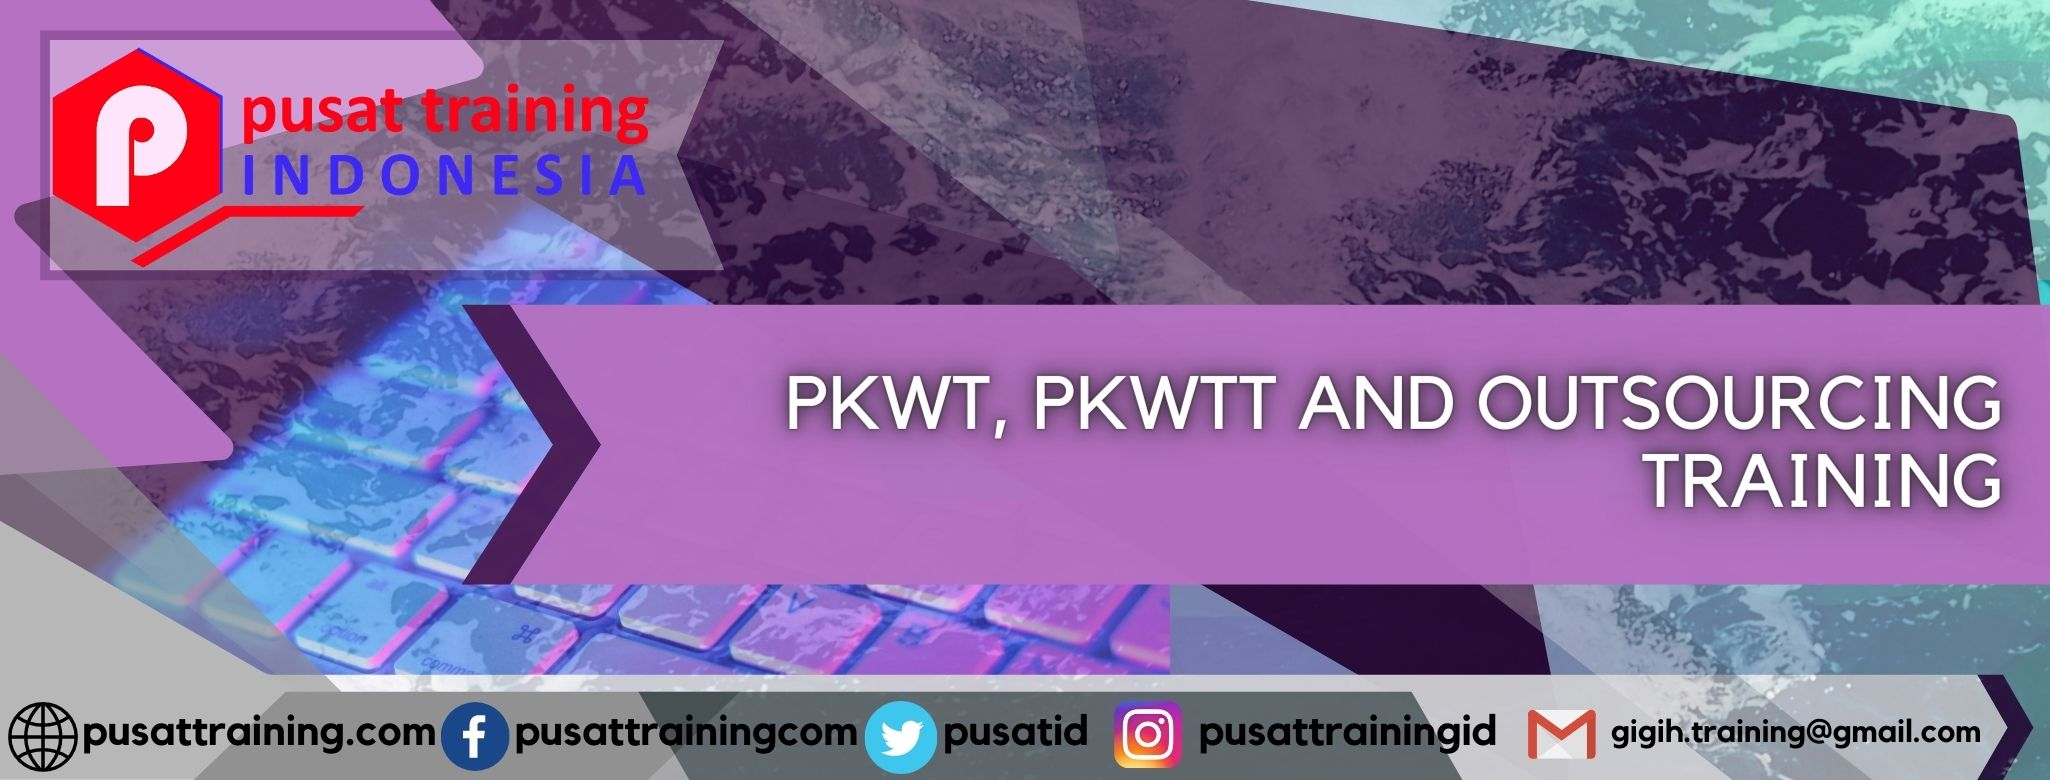 PKWT, PKWTT AND OUTSOURCING TRAINING